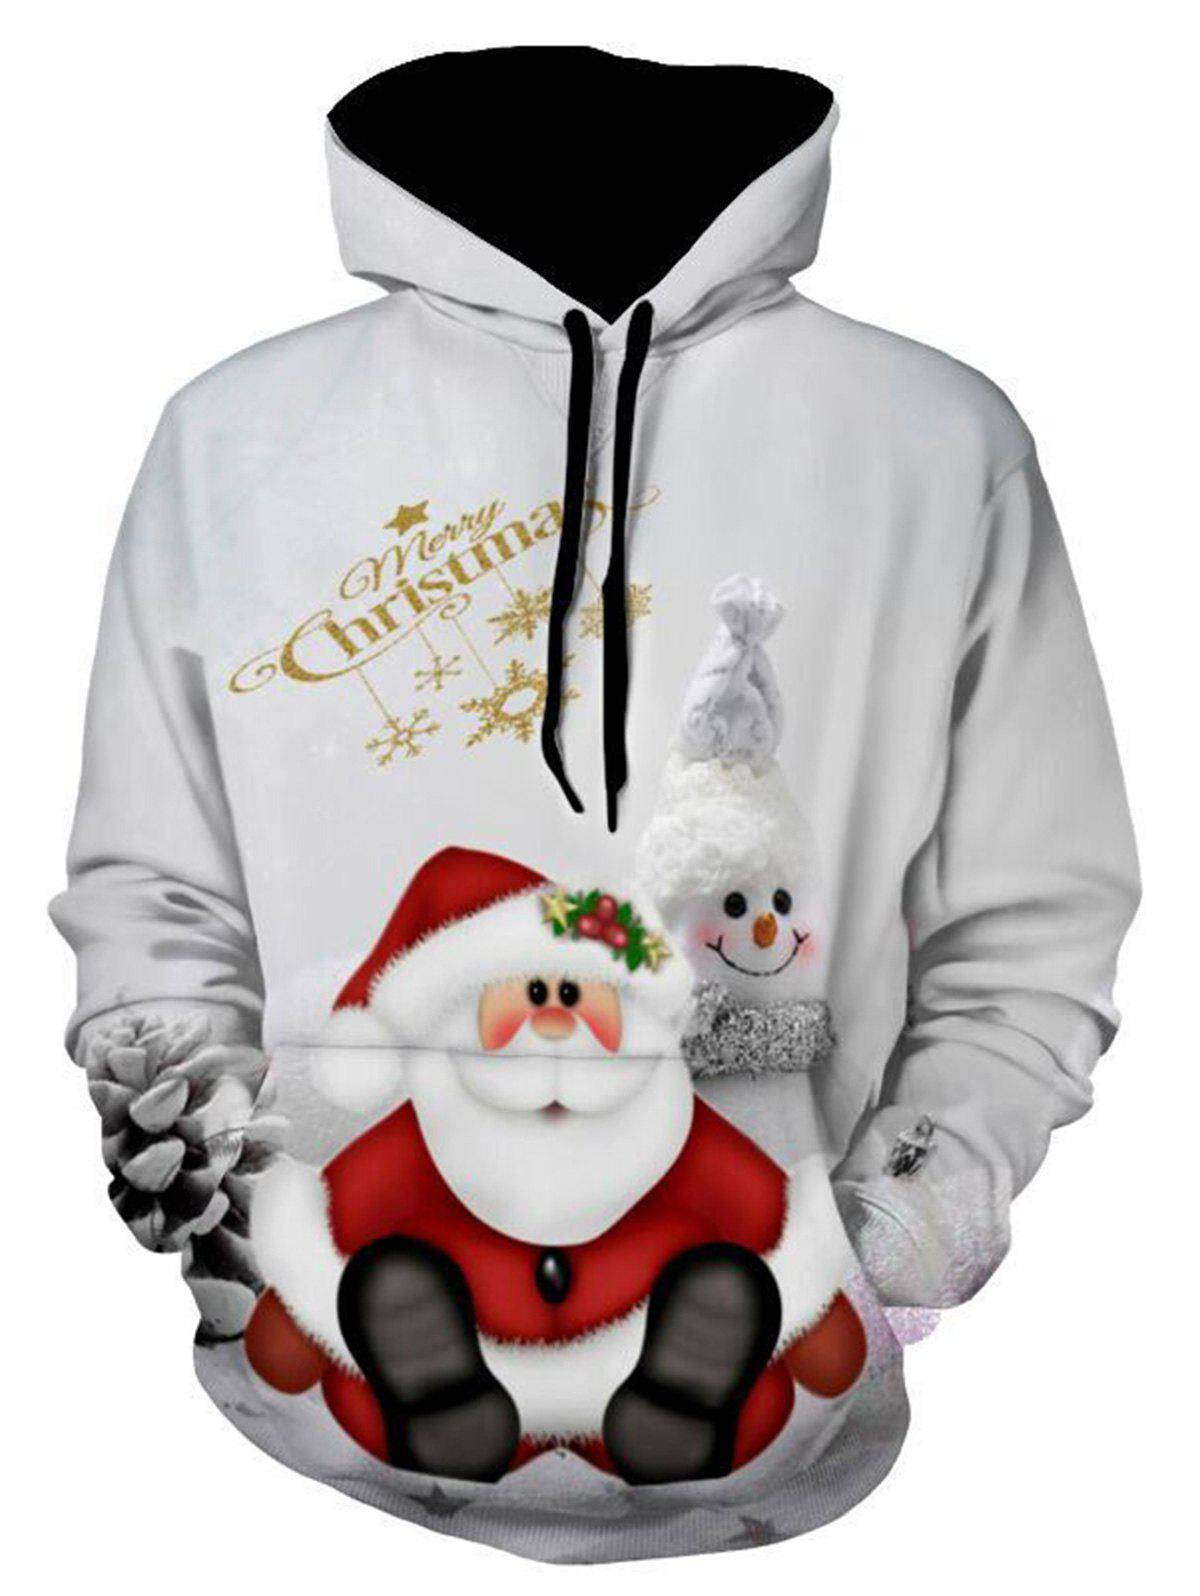 Christmas Snowman Print Pullover HoodieMEN<br><br>Size: 3XL; Color: GRAY; Material: Polyester,Spandex; Clothes Type: Hoodie; Shirt Length: Regular; Sleeve Length: Full; Style: Fashion; Patterns: 3D,Animal,Print; Thickness: Regular; Occasion: Casual ,Daily Use,Going Out; Weight: 0.5400kg; Package Contents: 1 x Hoodie;